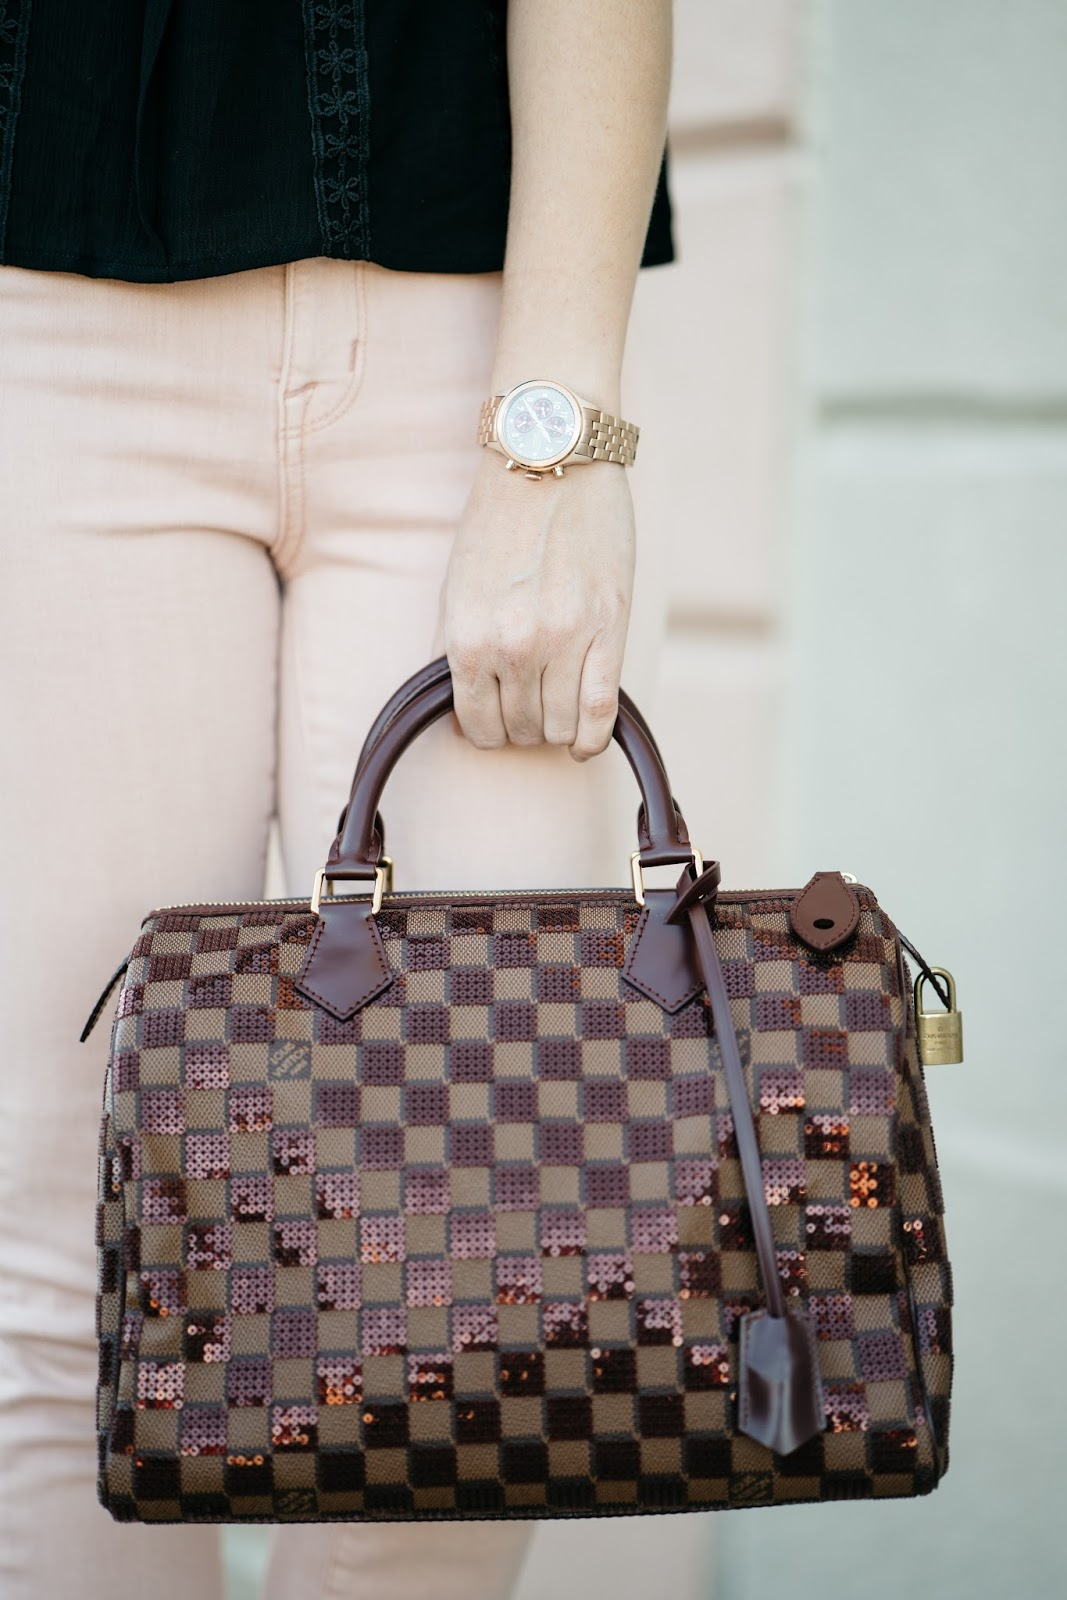 02711b435be5 What's better than a fancy designer bag? A fancy designer bag at a  discounted price! Trendlee recently sent me this Louis Vuitton Speedy  Damier bag to style ...